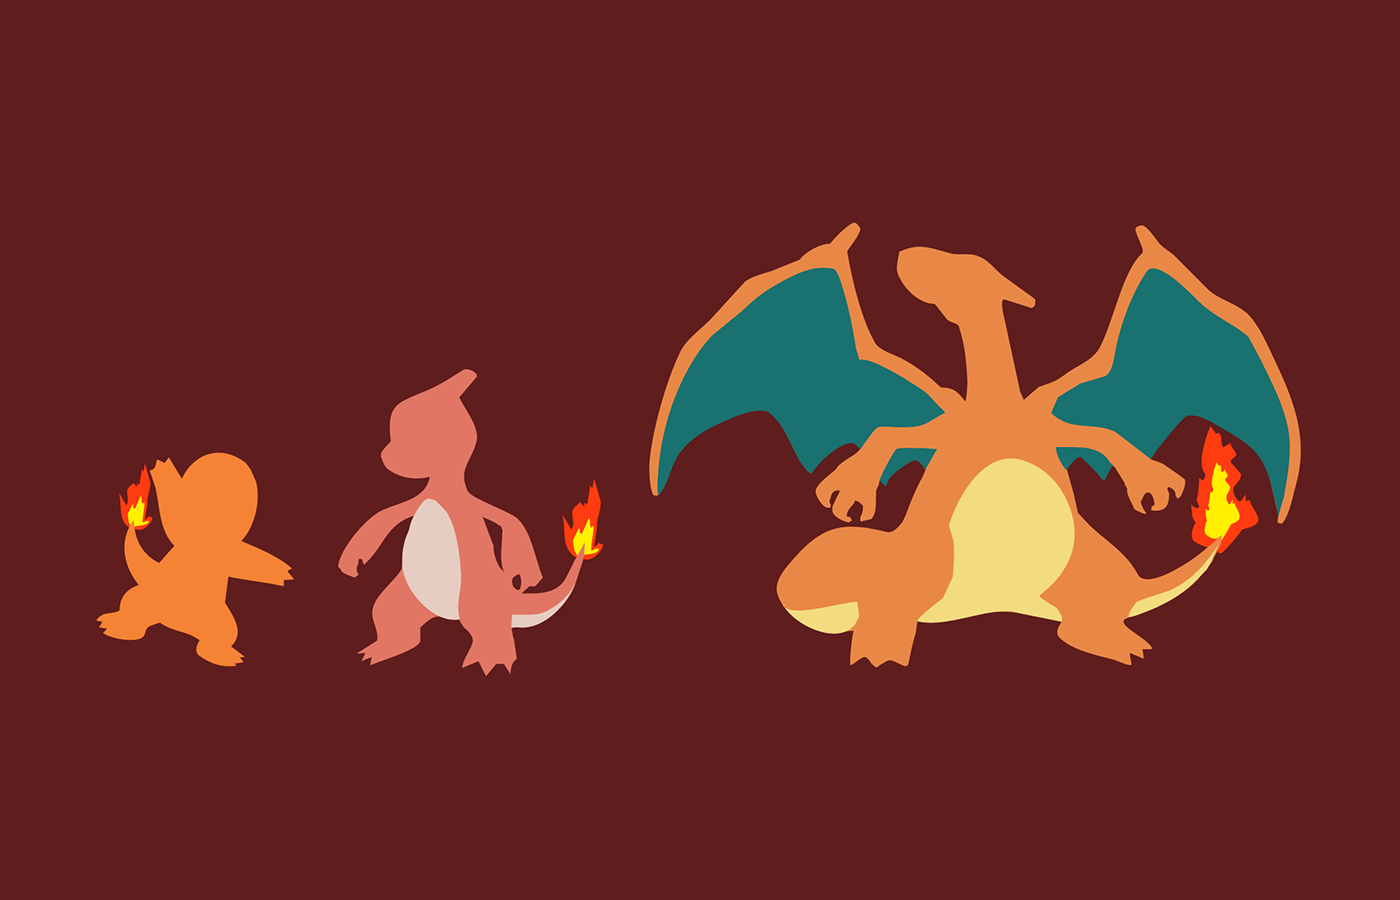 Charmander Wallpapers 2016 4k Wallpapers Cute Pokemon Wallpaper Pikachu Wallpaper Anime Wallpaper 1920x1080